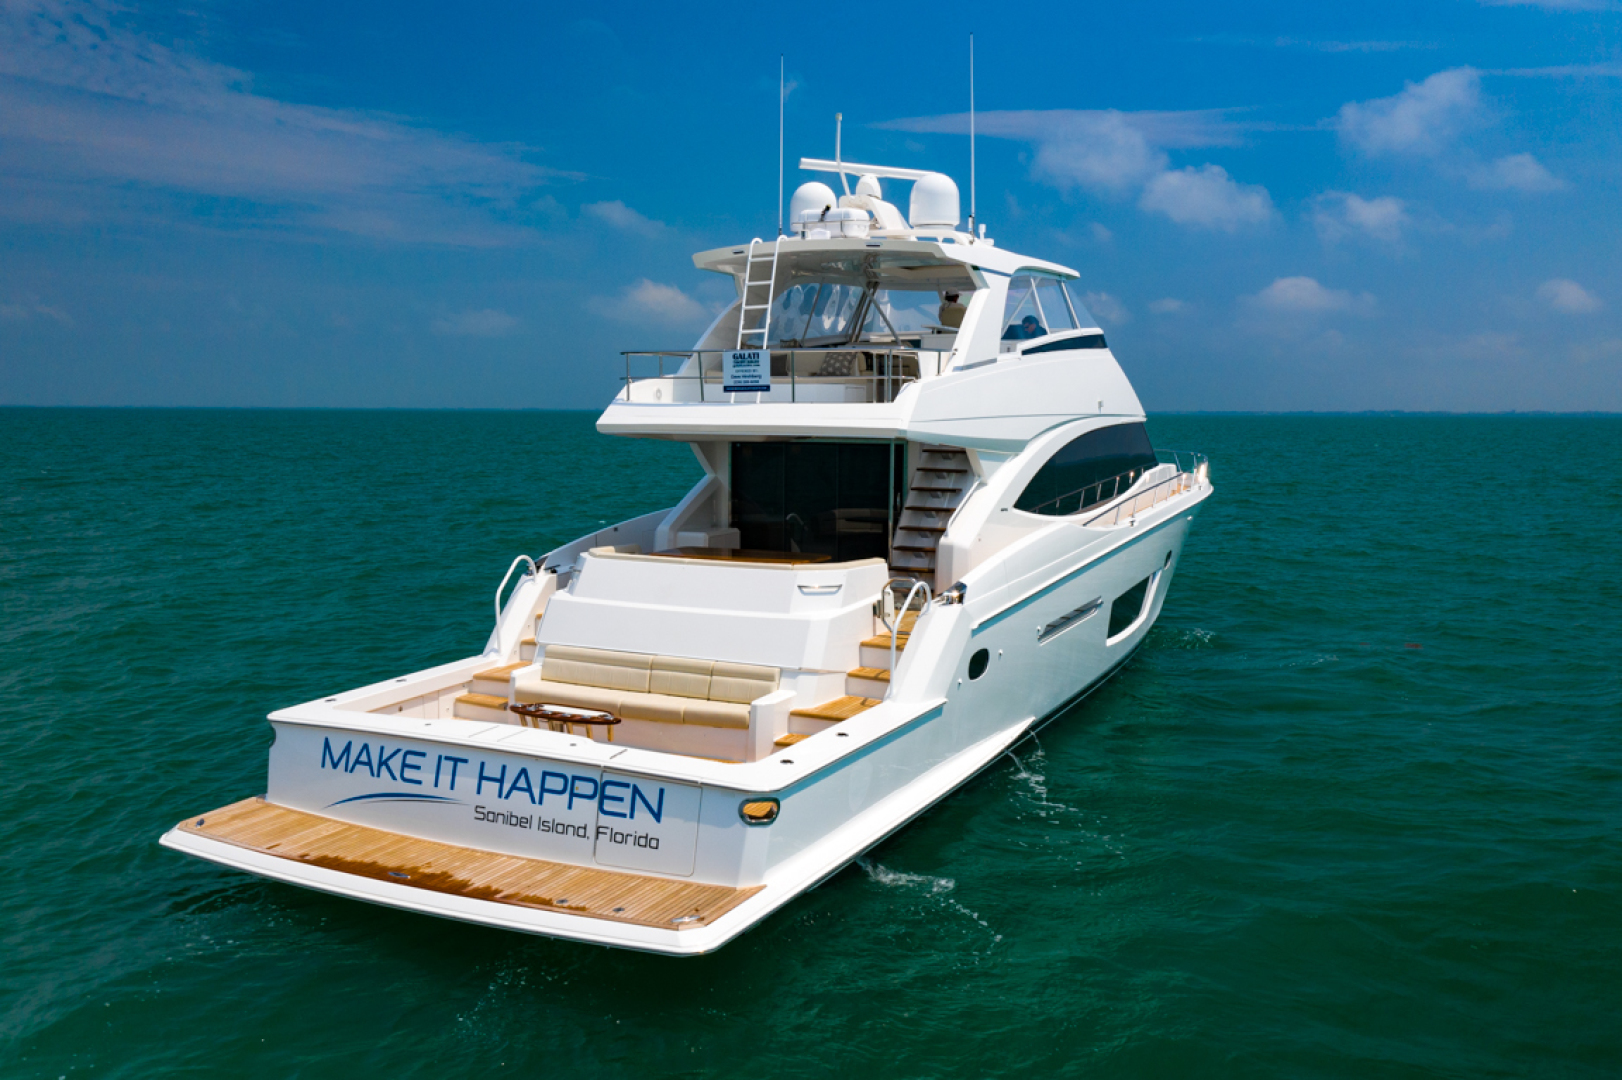 Viking-82 Cockpit MY 2019-Make It Happen Sanibel -Florida-United States-Viking 82CPMY Make It Happen Stern Aerial-1378584 | Thumbnail